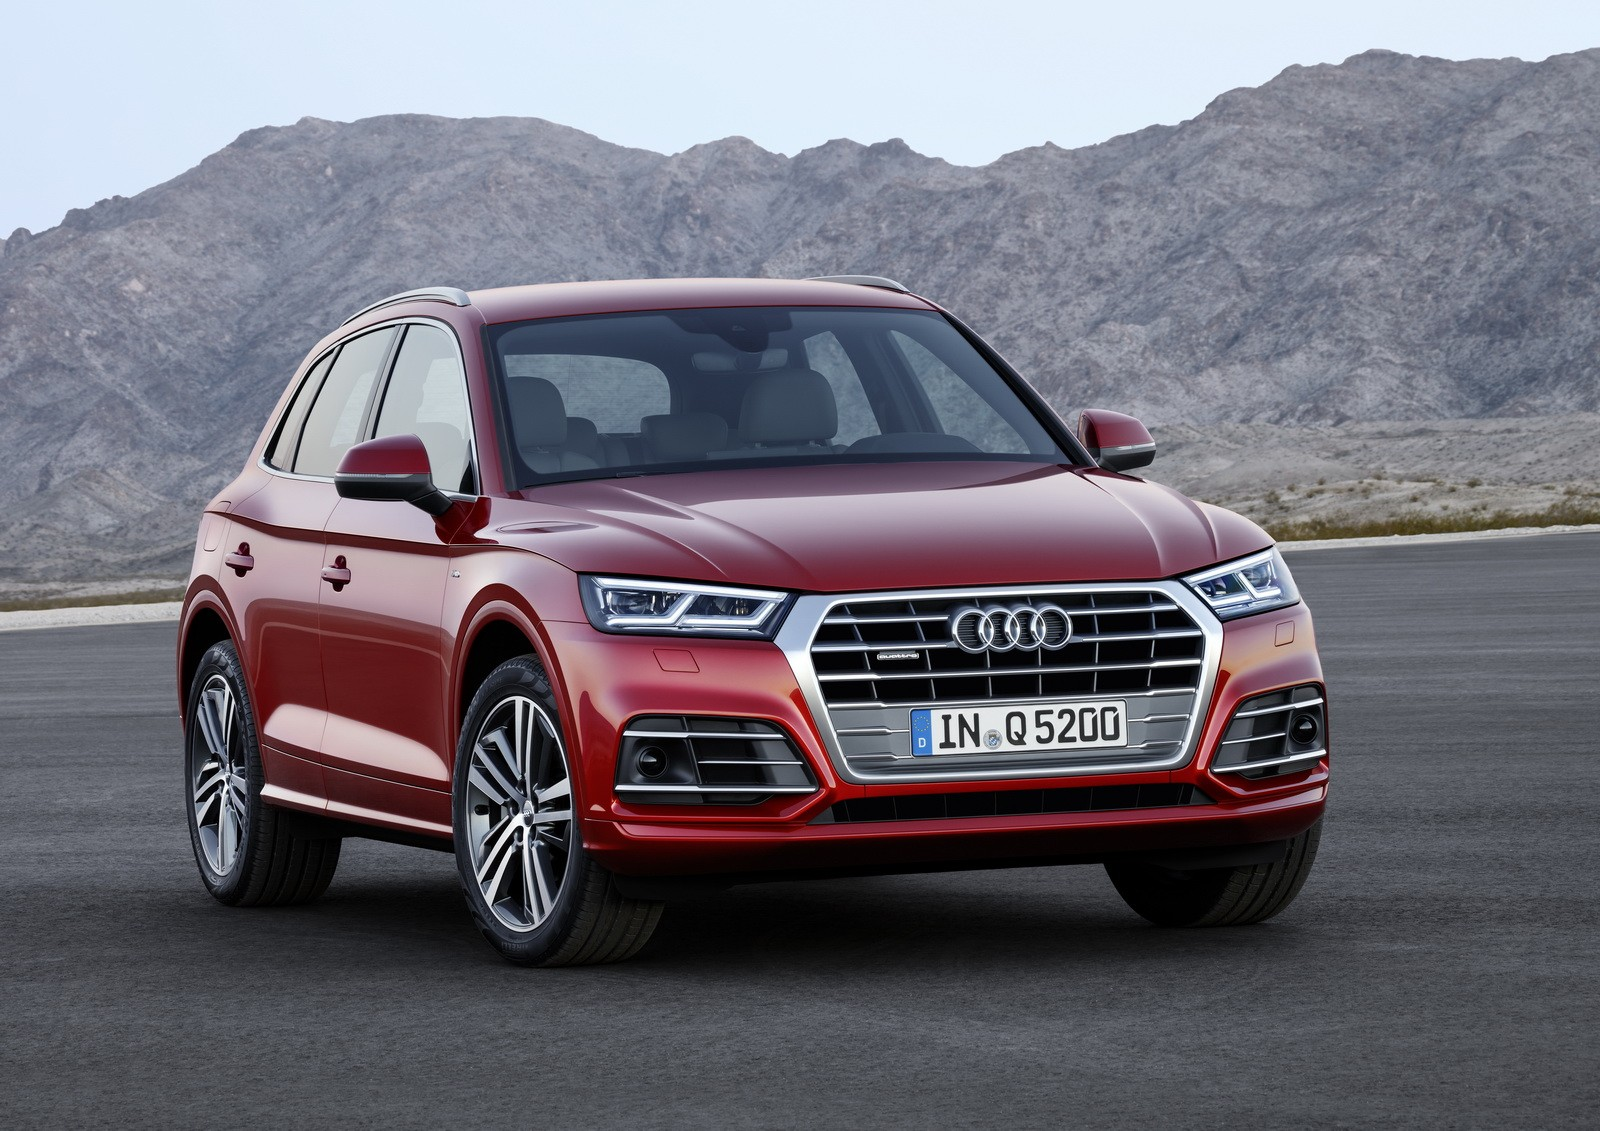 Audis Millionth Quattro Car Is Made In Mexico Autoevolution - Where are audis made